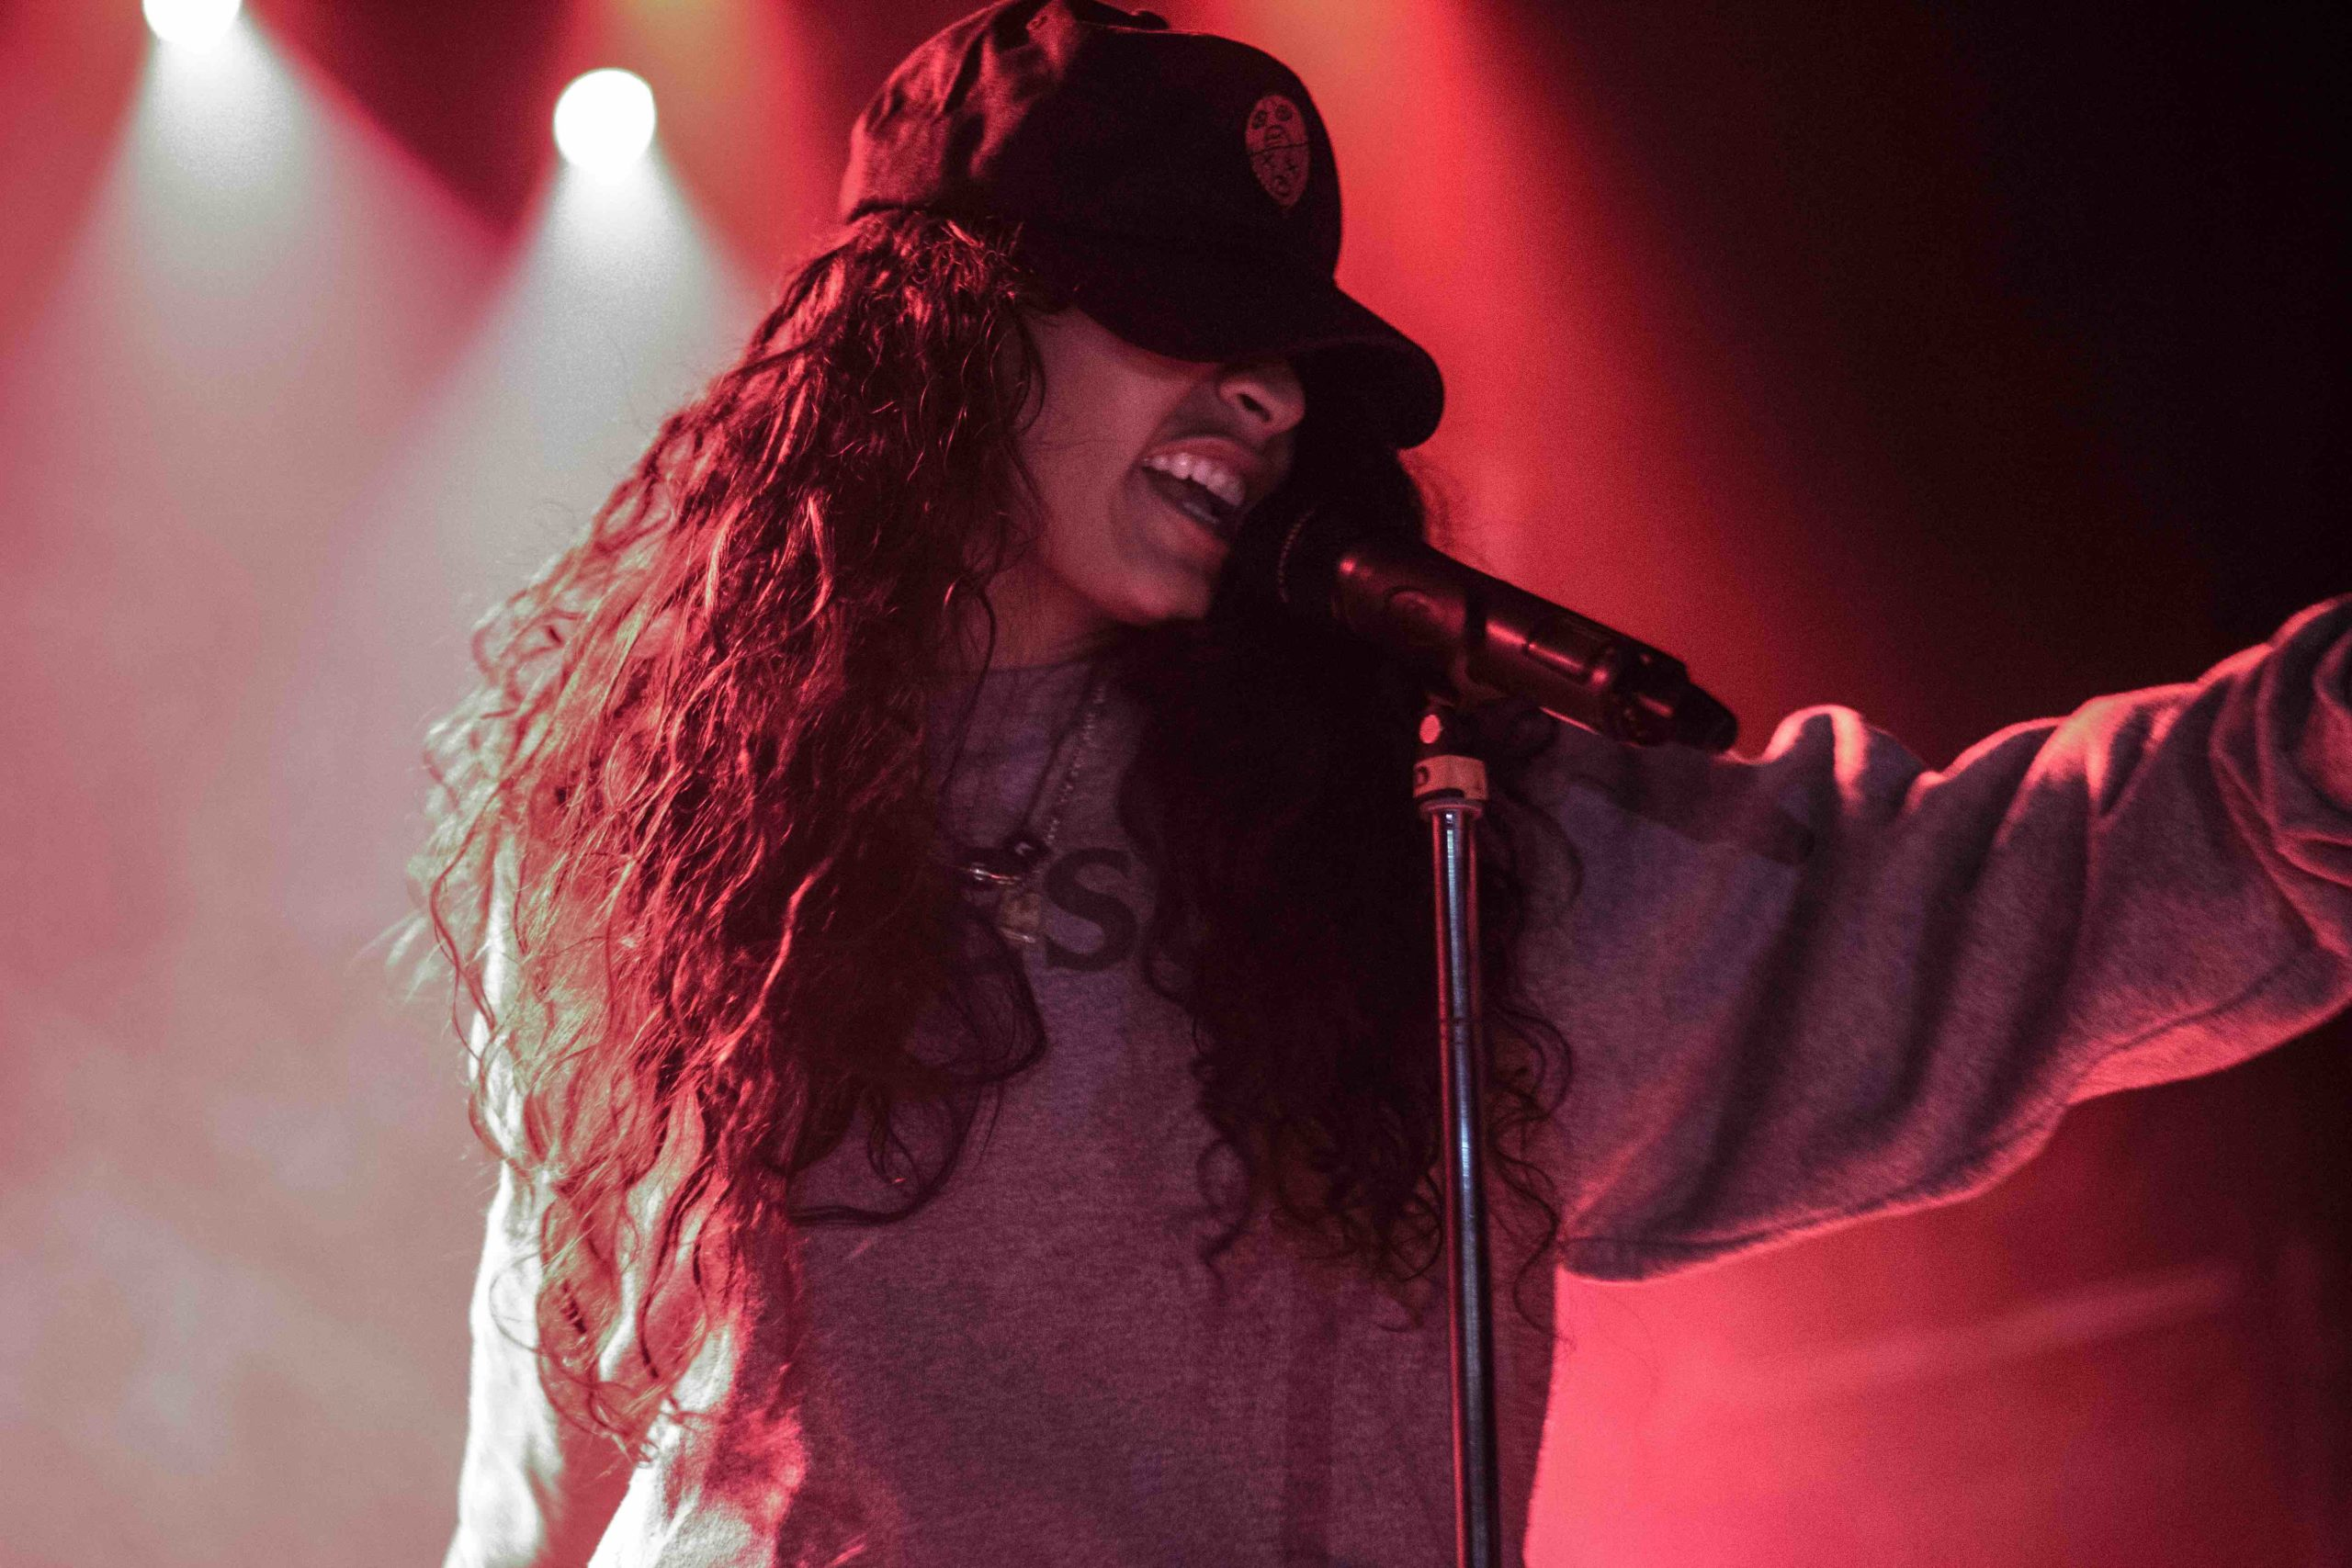 Jessie Reyez live at The Mod Club (July 2017)